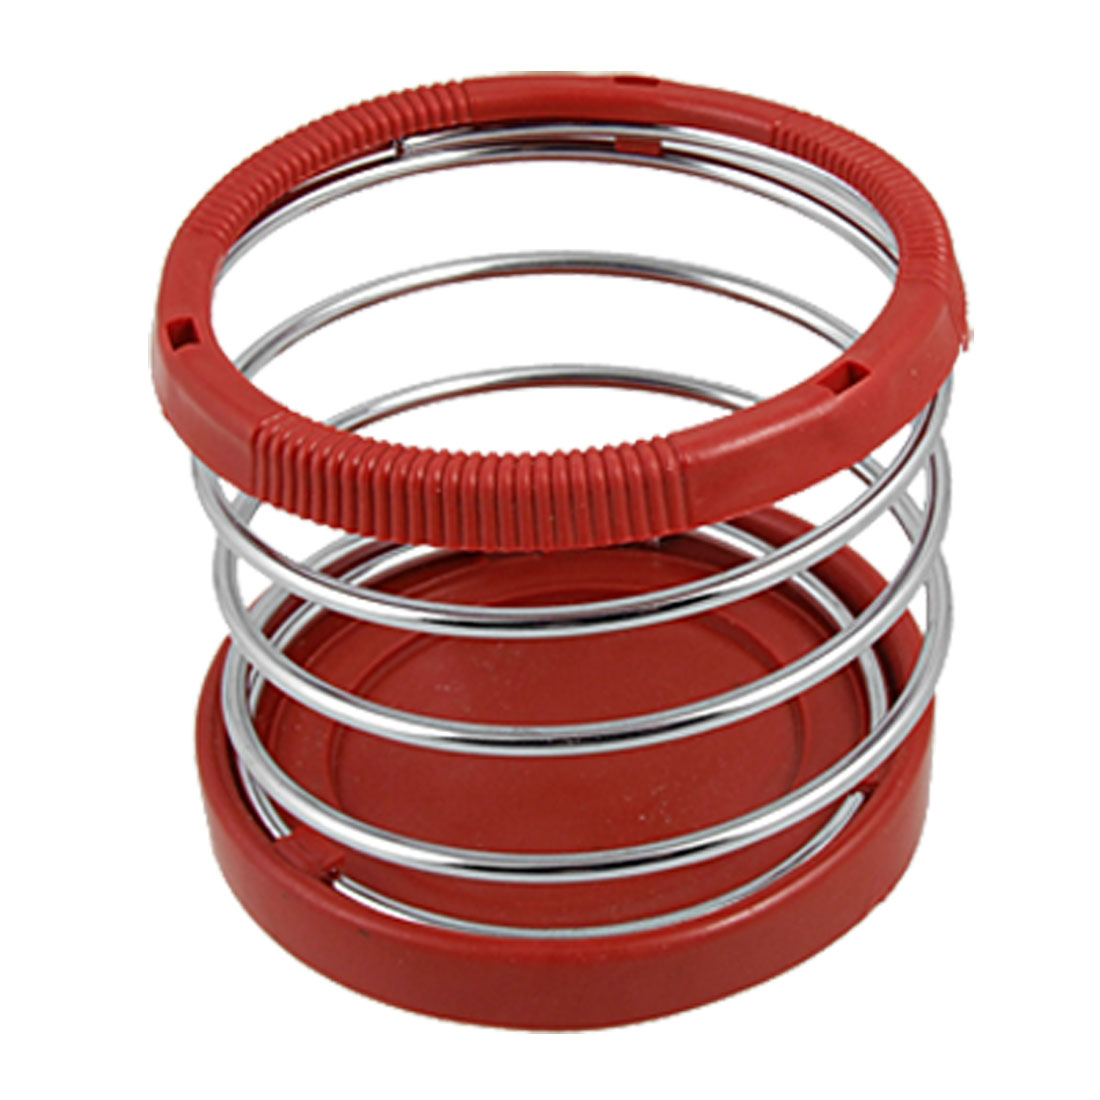 Car Auto Truck Spring Cup Bottle Mount Holder Stand Red